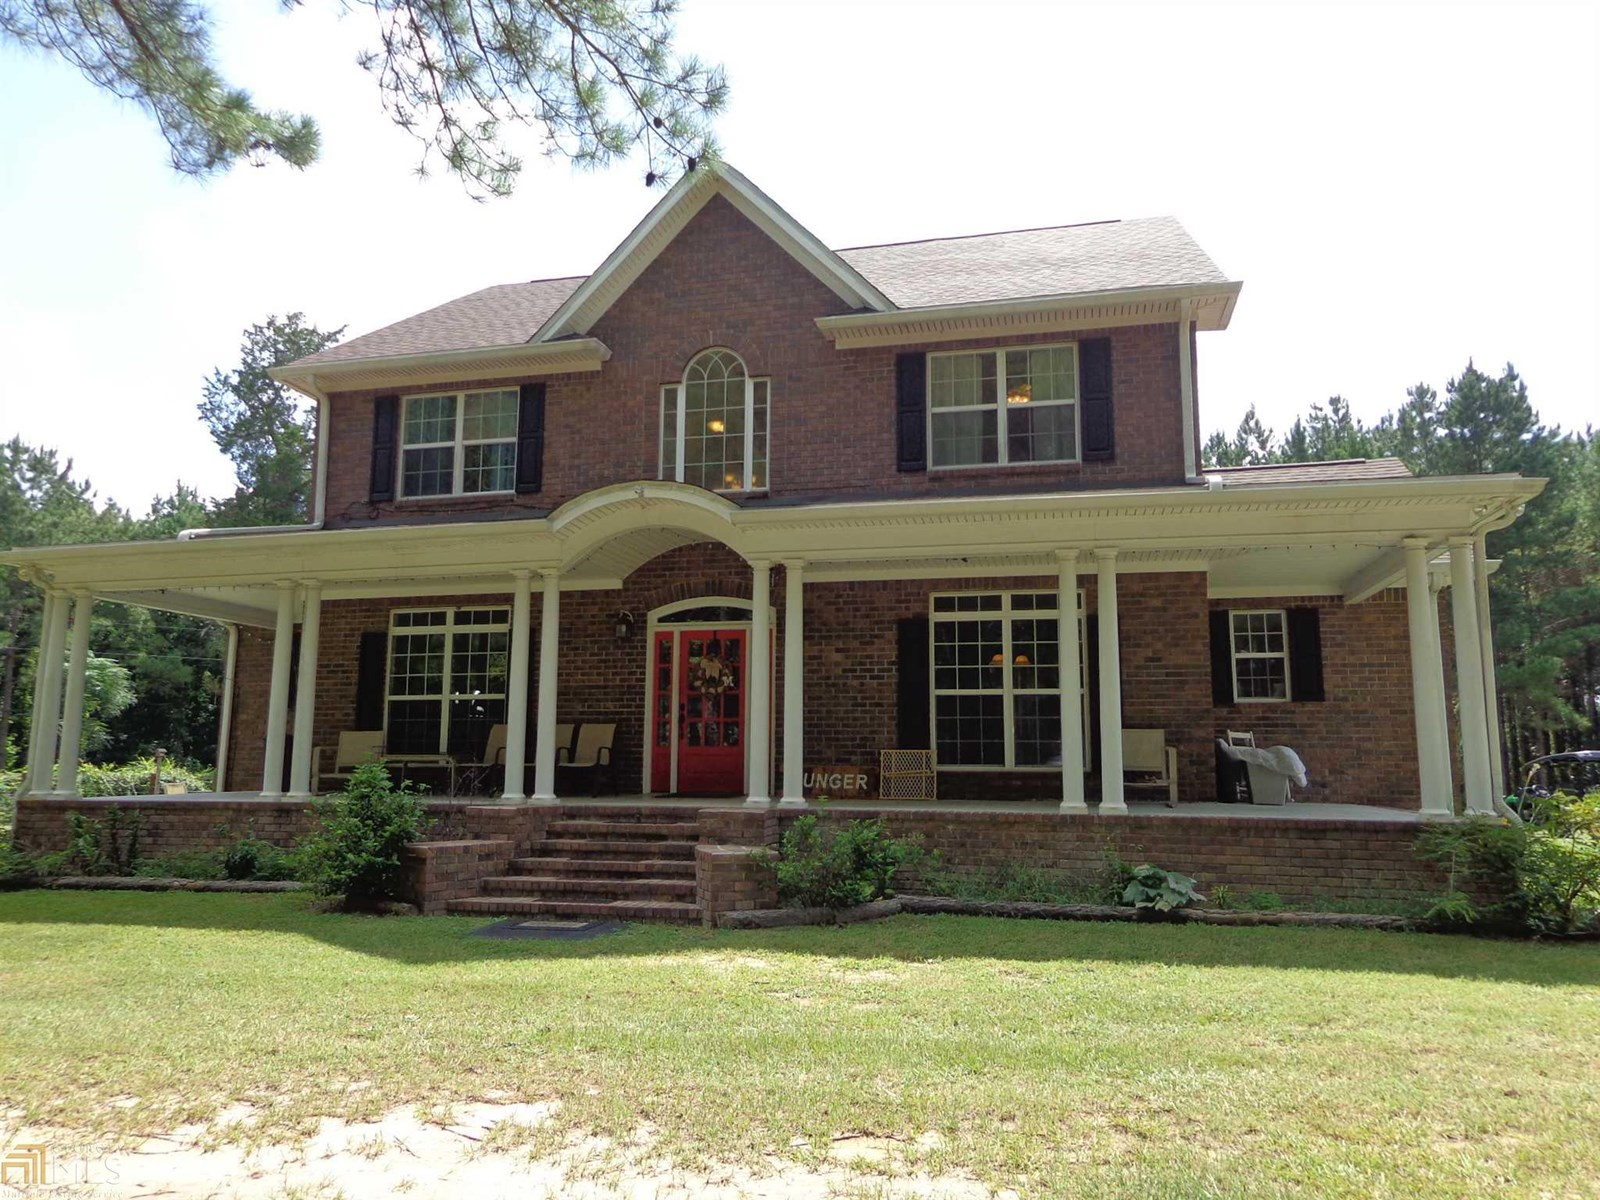 5 BR & 3.5 BA Nestled on Hill in 7+ Acres of Wooded Privacy